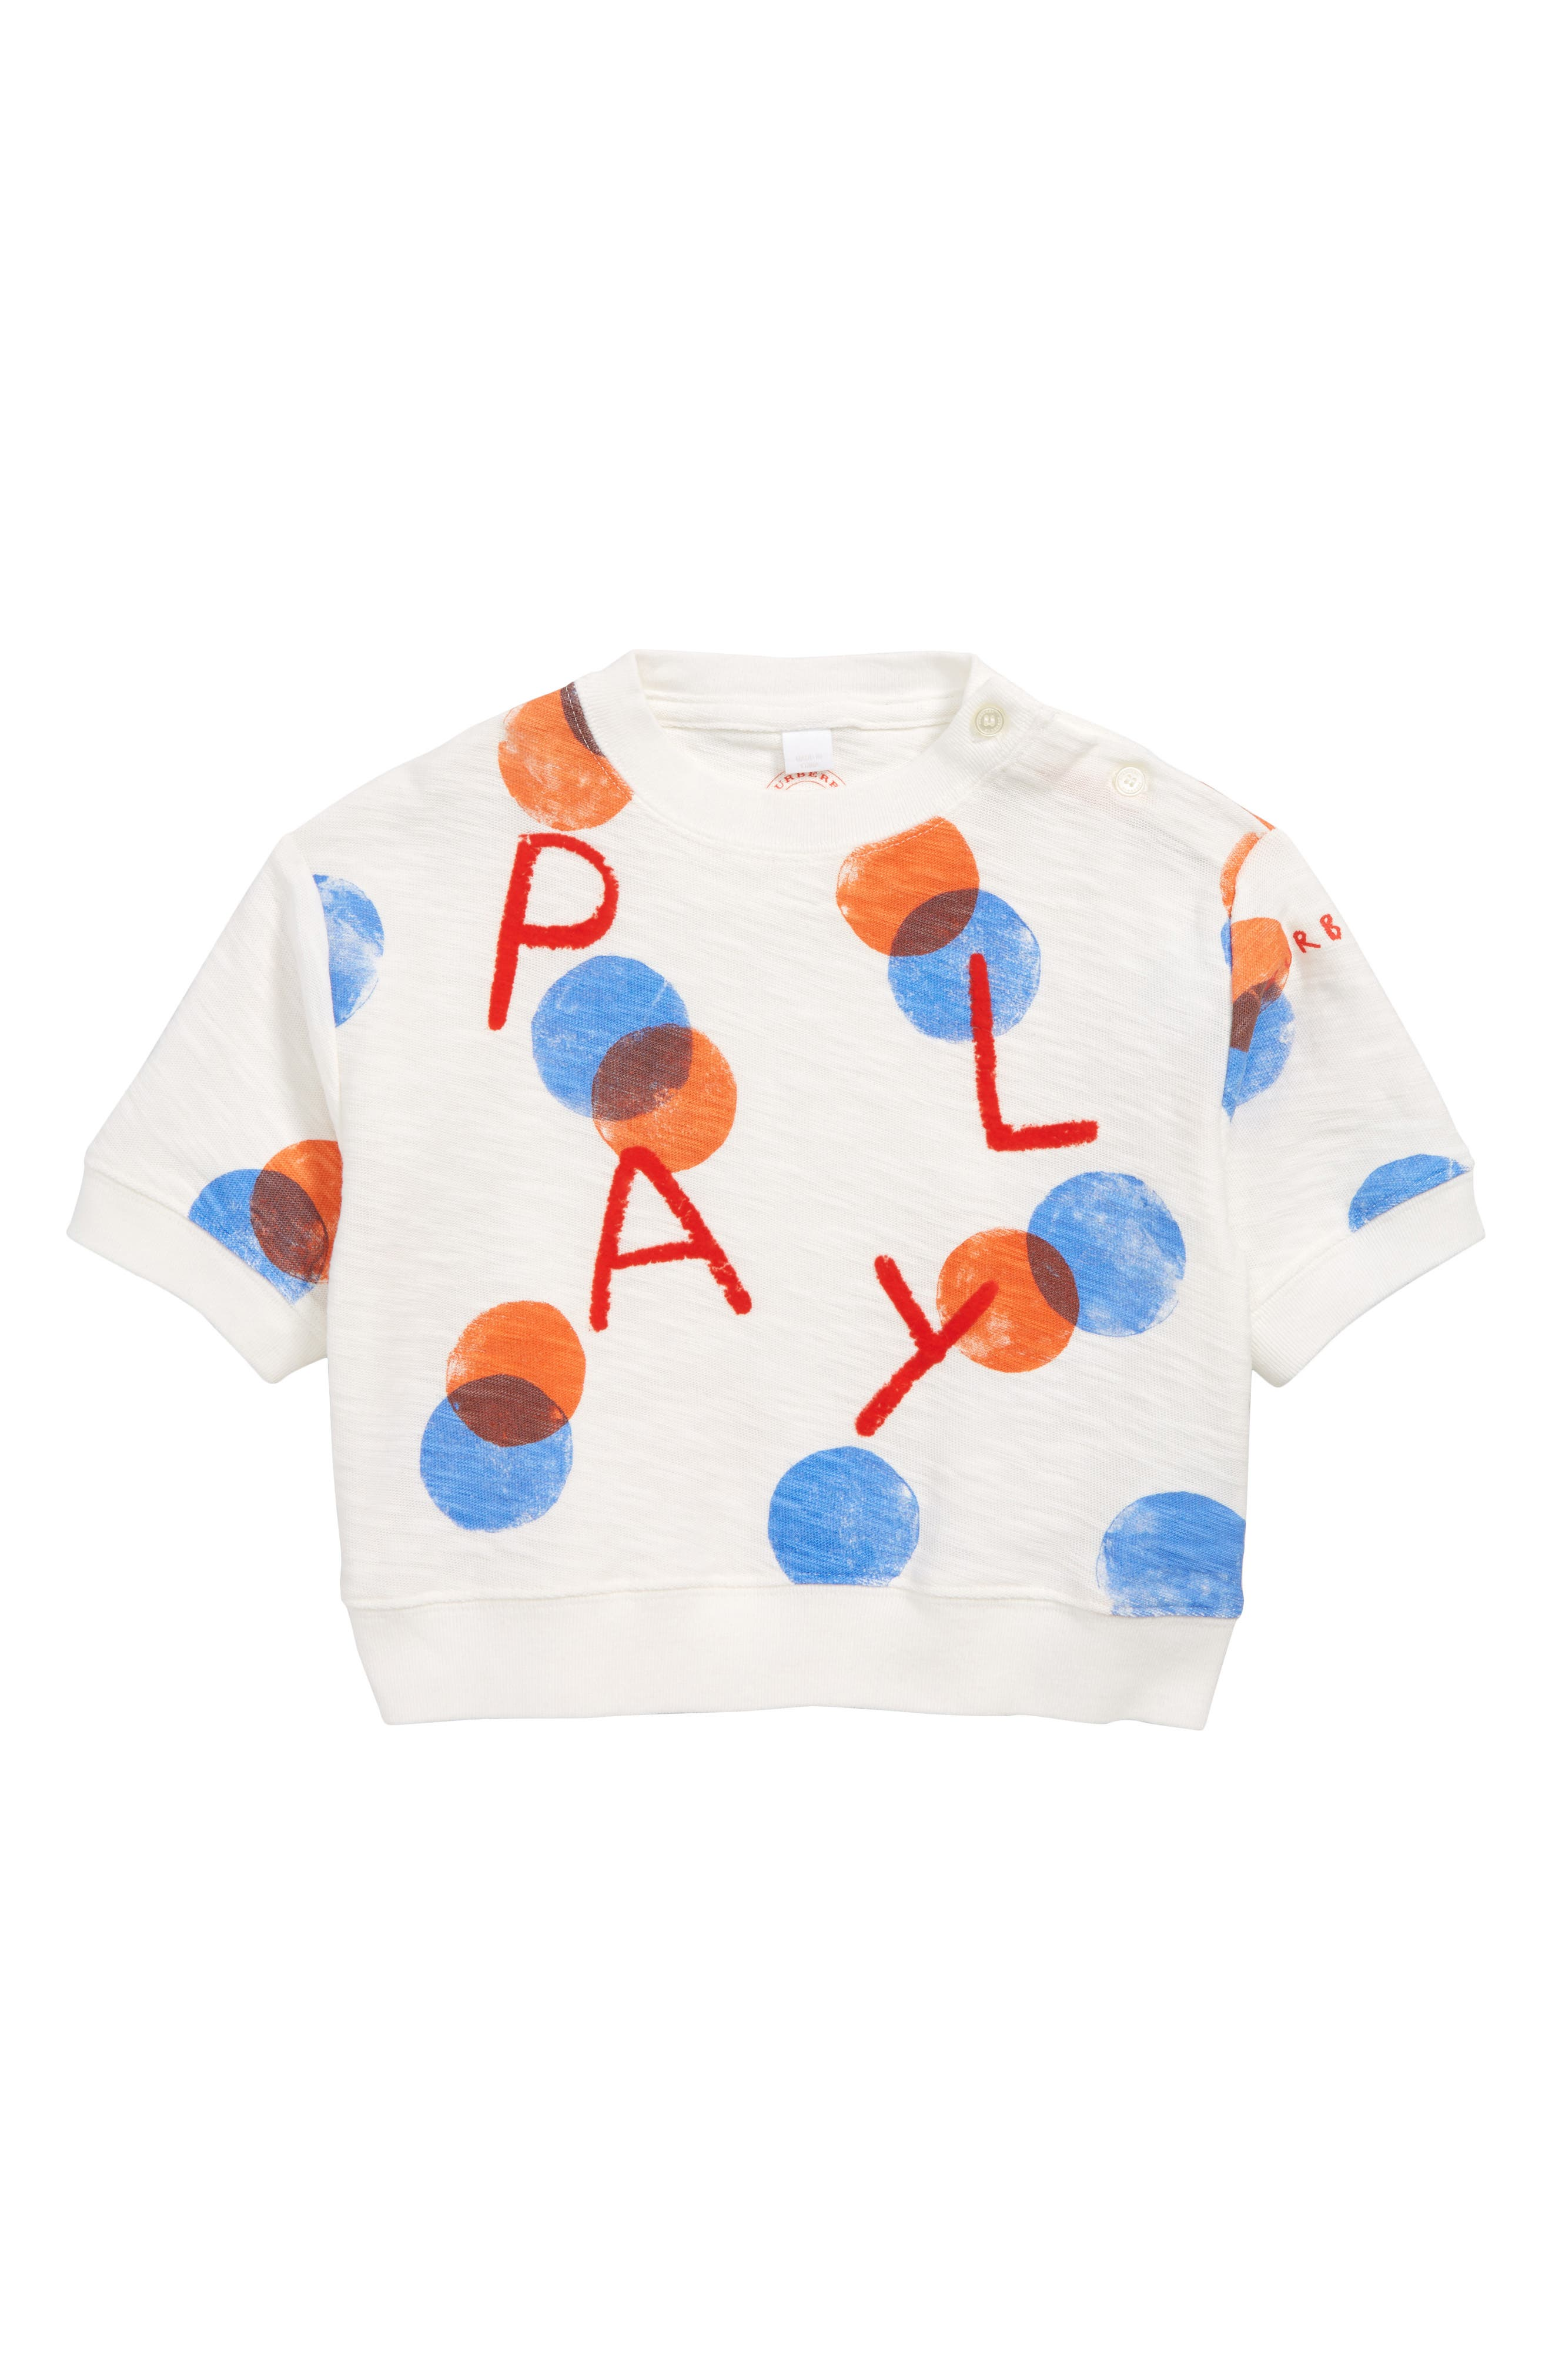 BURBERRY Play Print Sweater, Main, color, WHITE